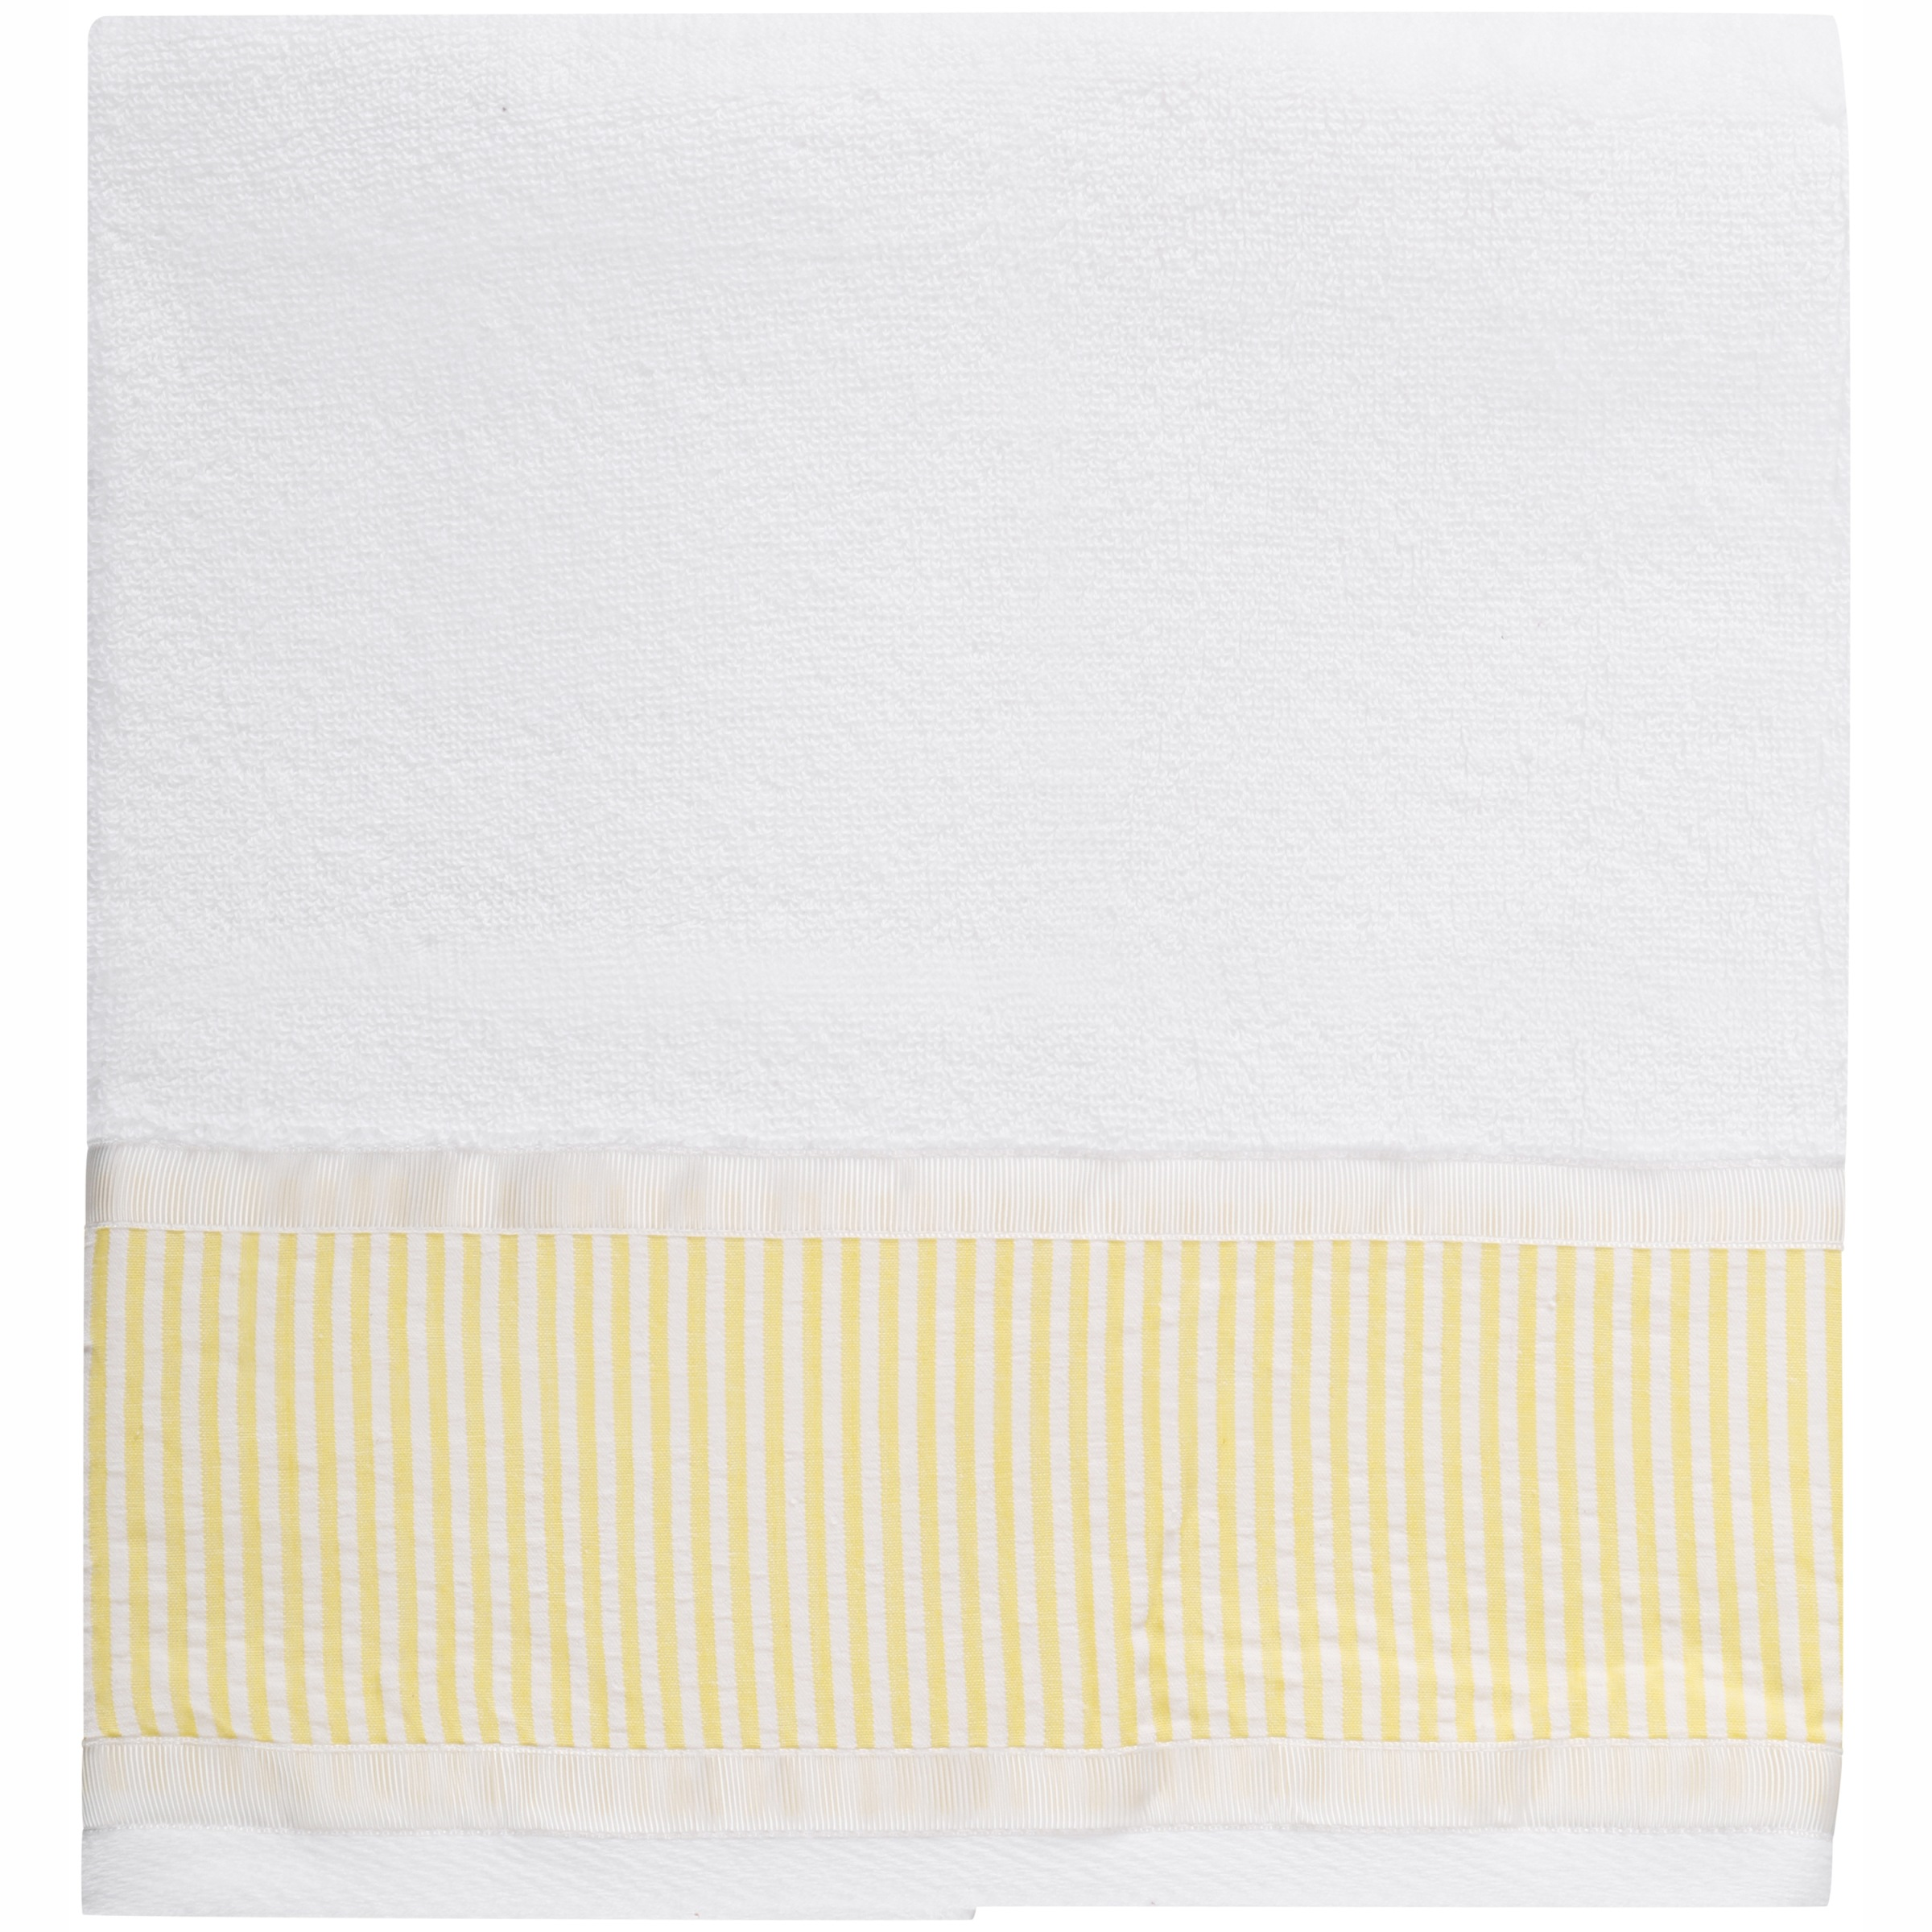 Homewear 100% Cotton Bath Towel by Homewear